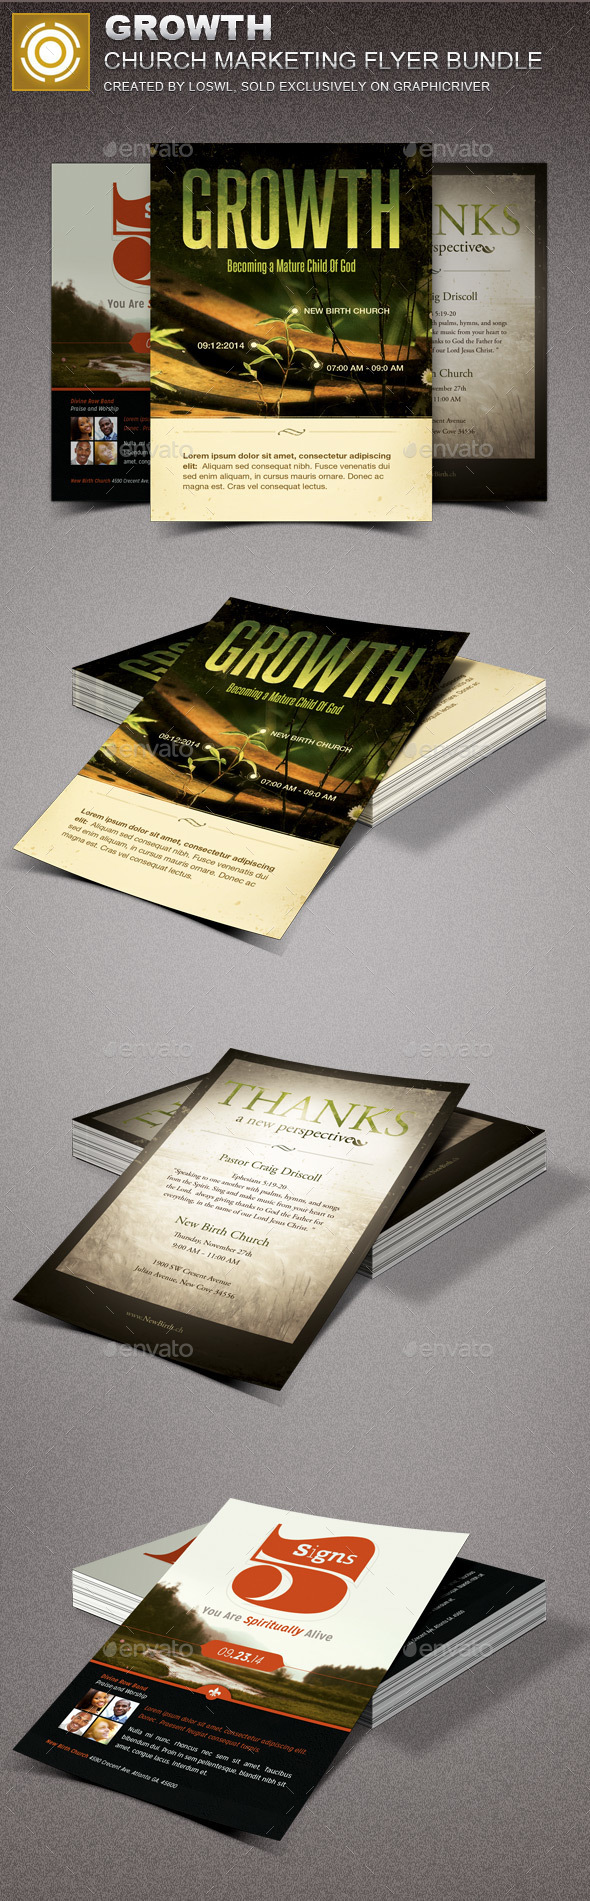 Growth Church Marketing Flyer Template Bundle - Church Flyers